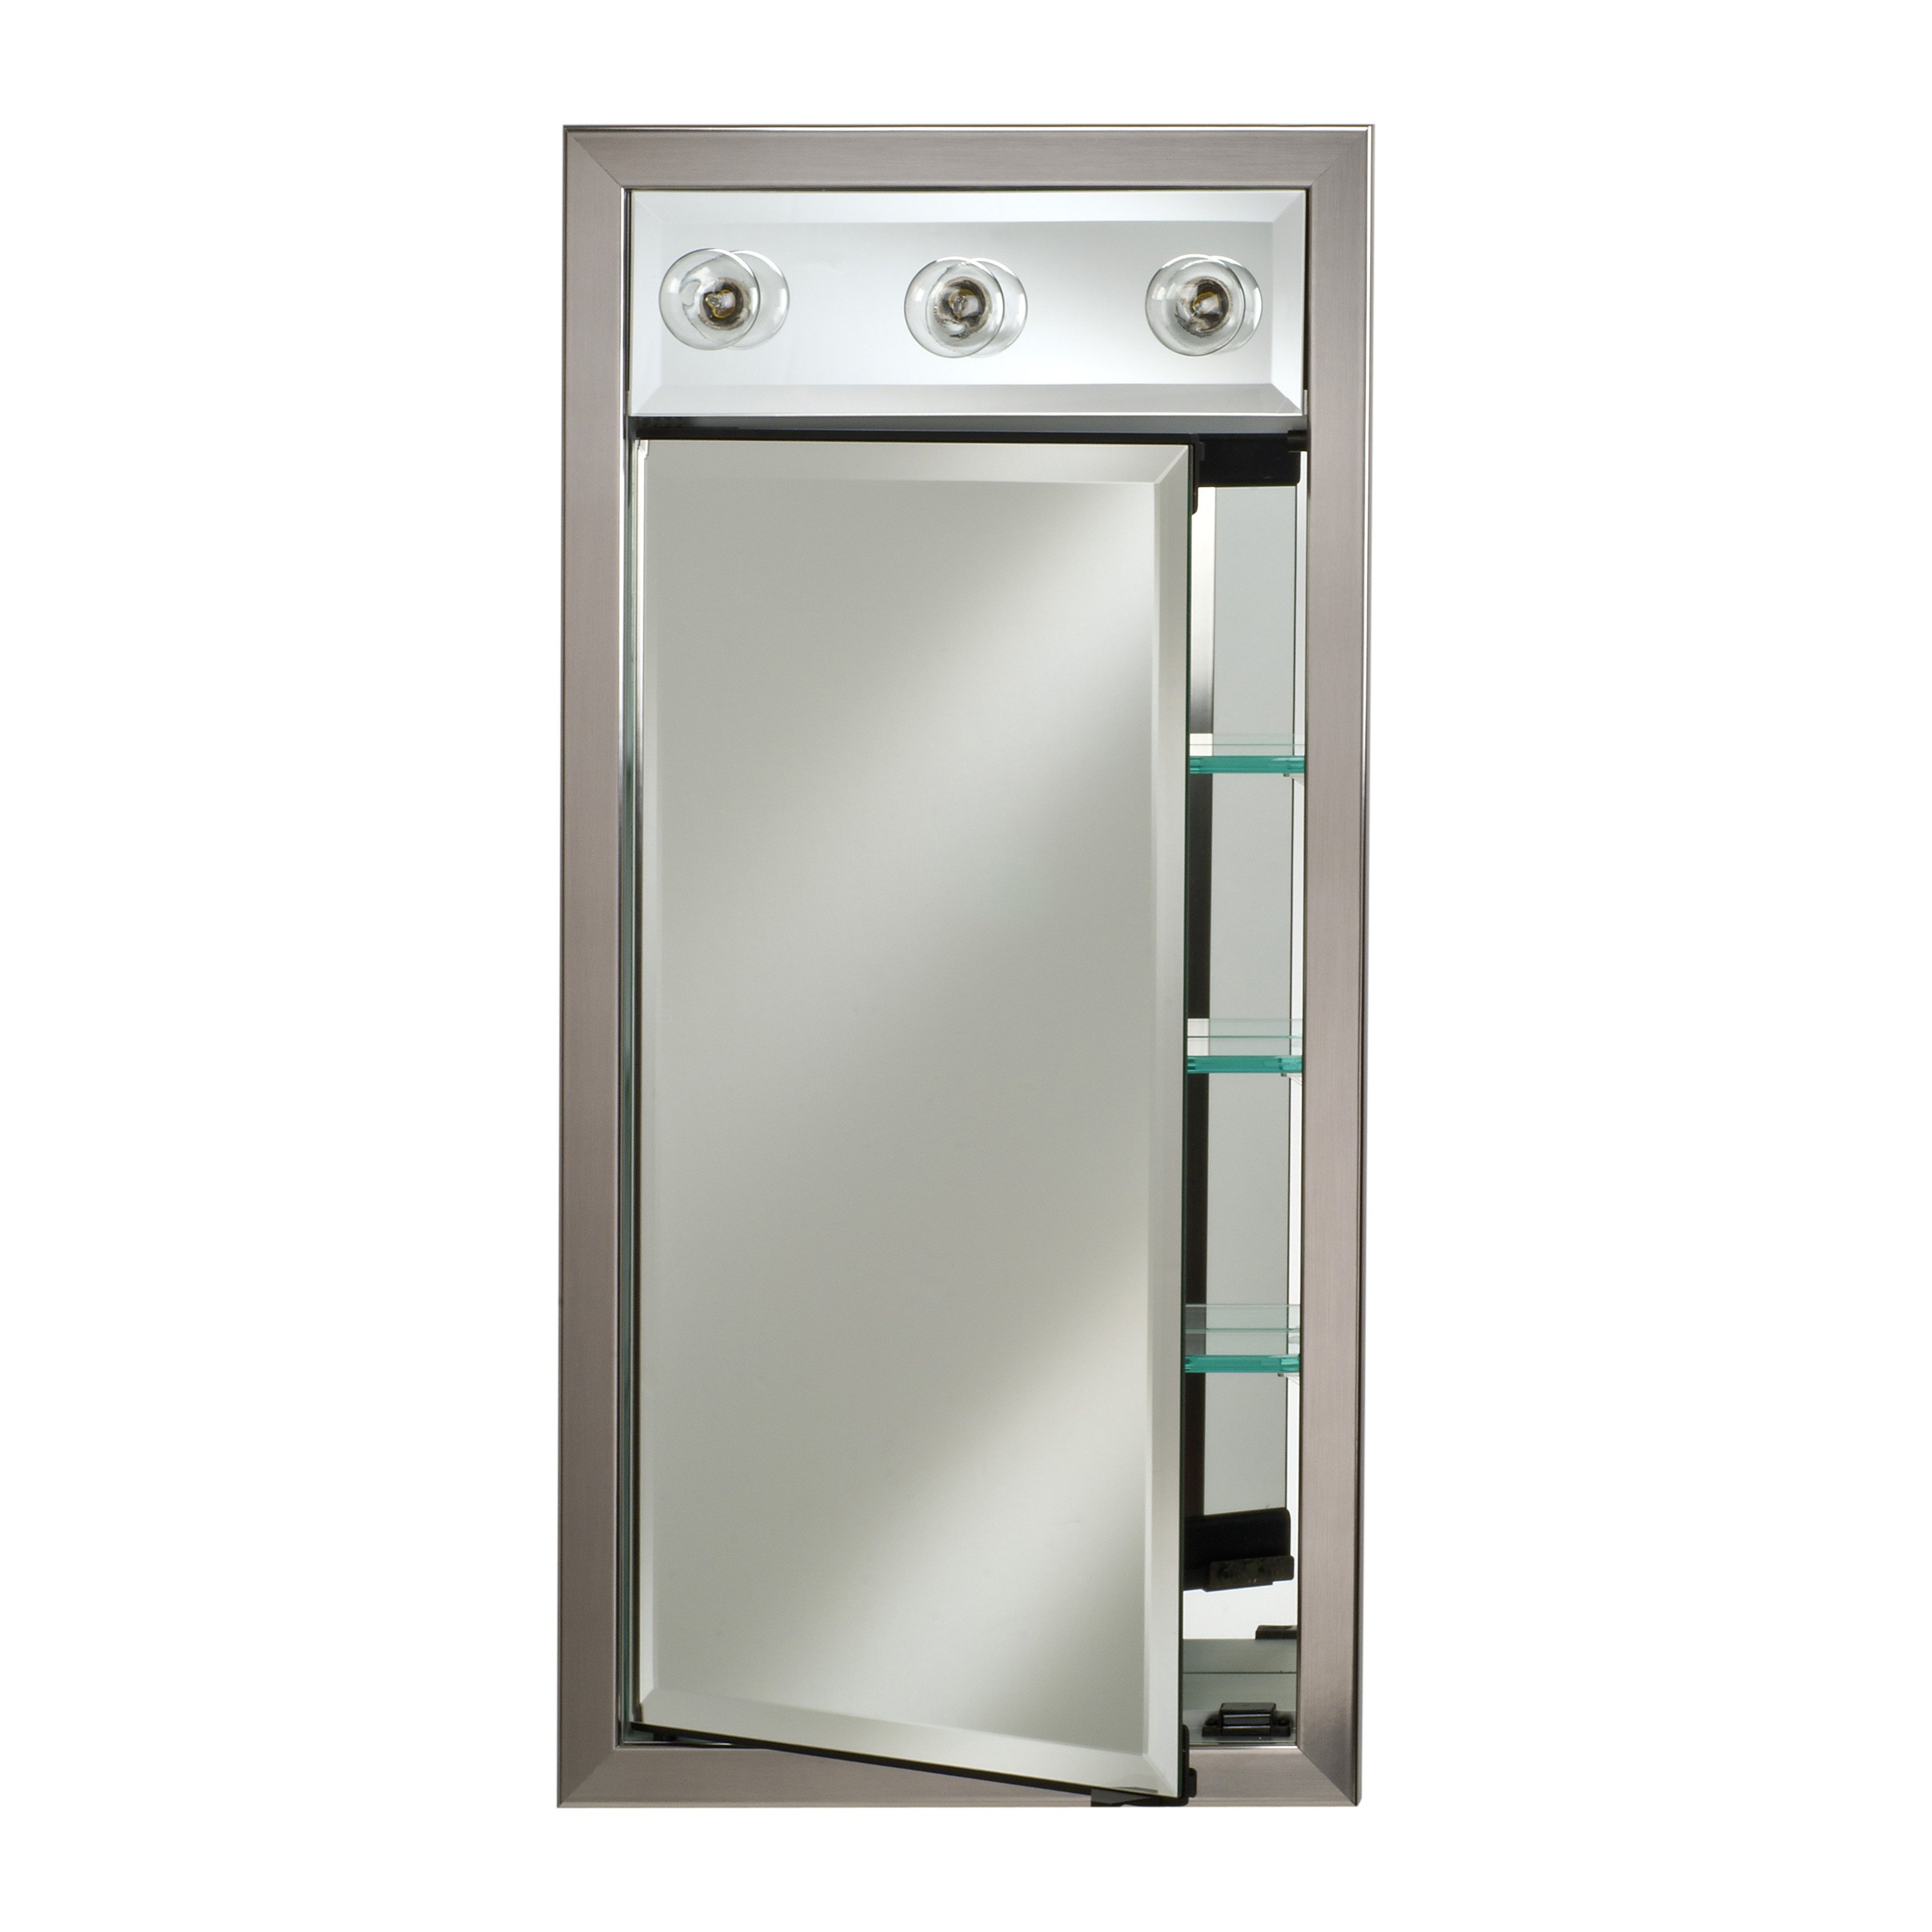 Afina Signature Collection Contemporary Integral Lighted Single Door 17W x 30H in. Recessed Medicine Cabinet